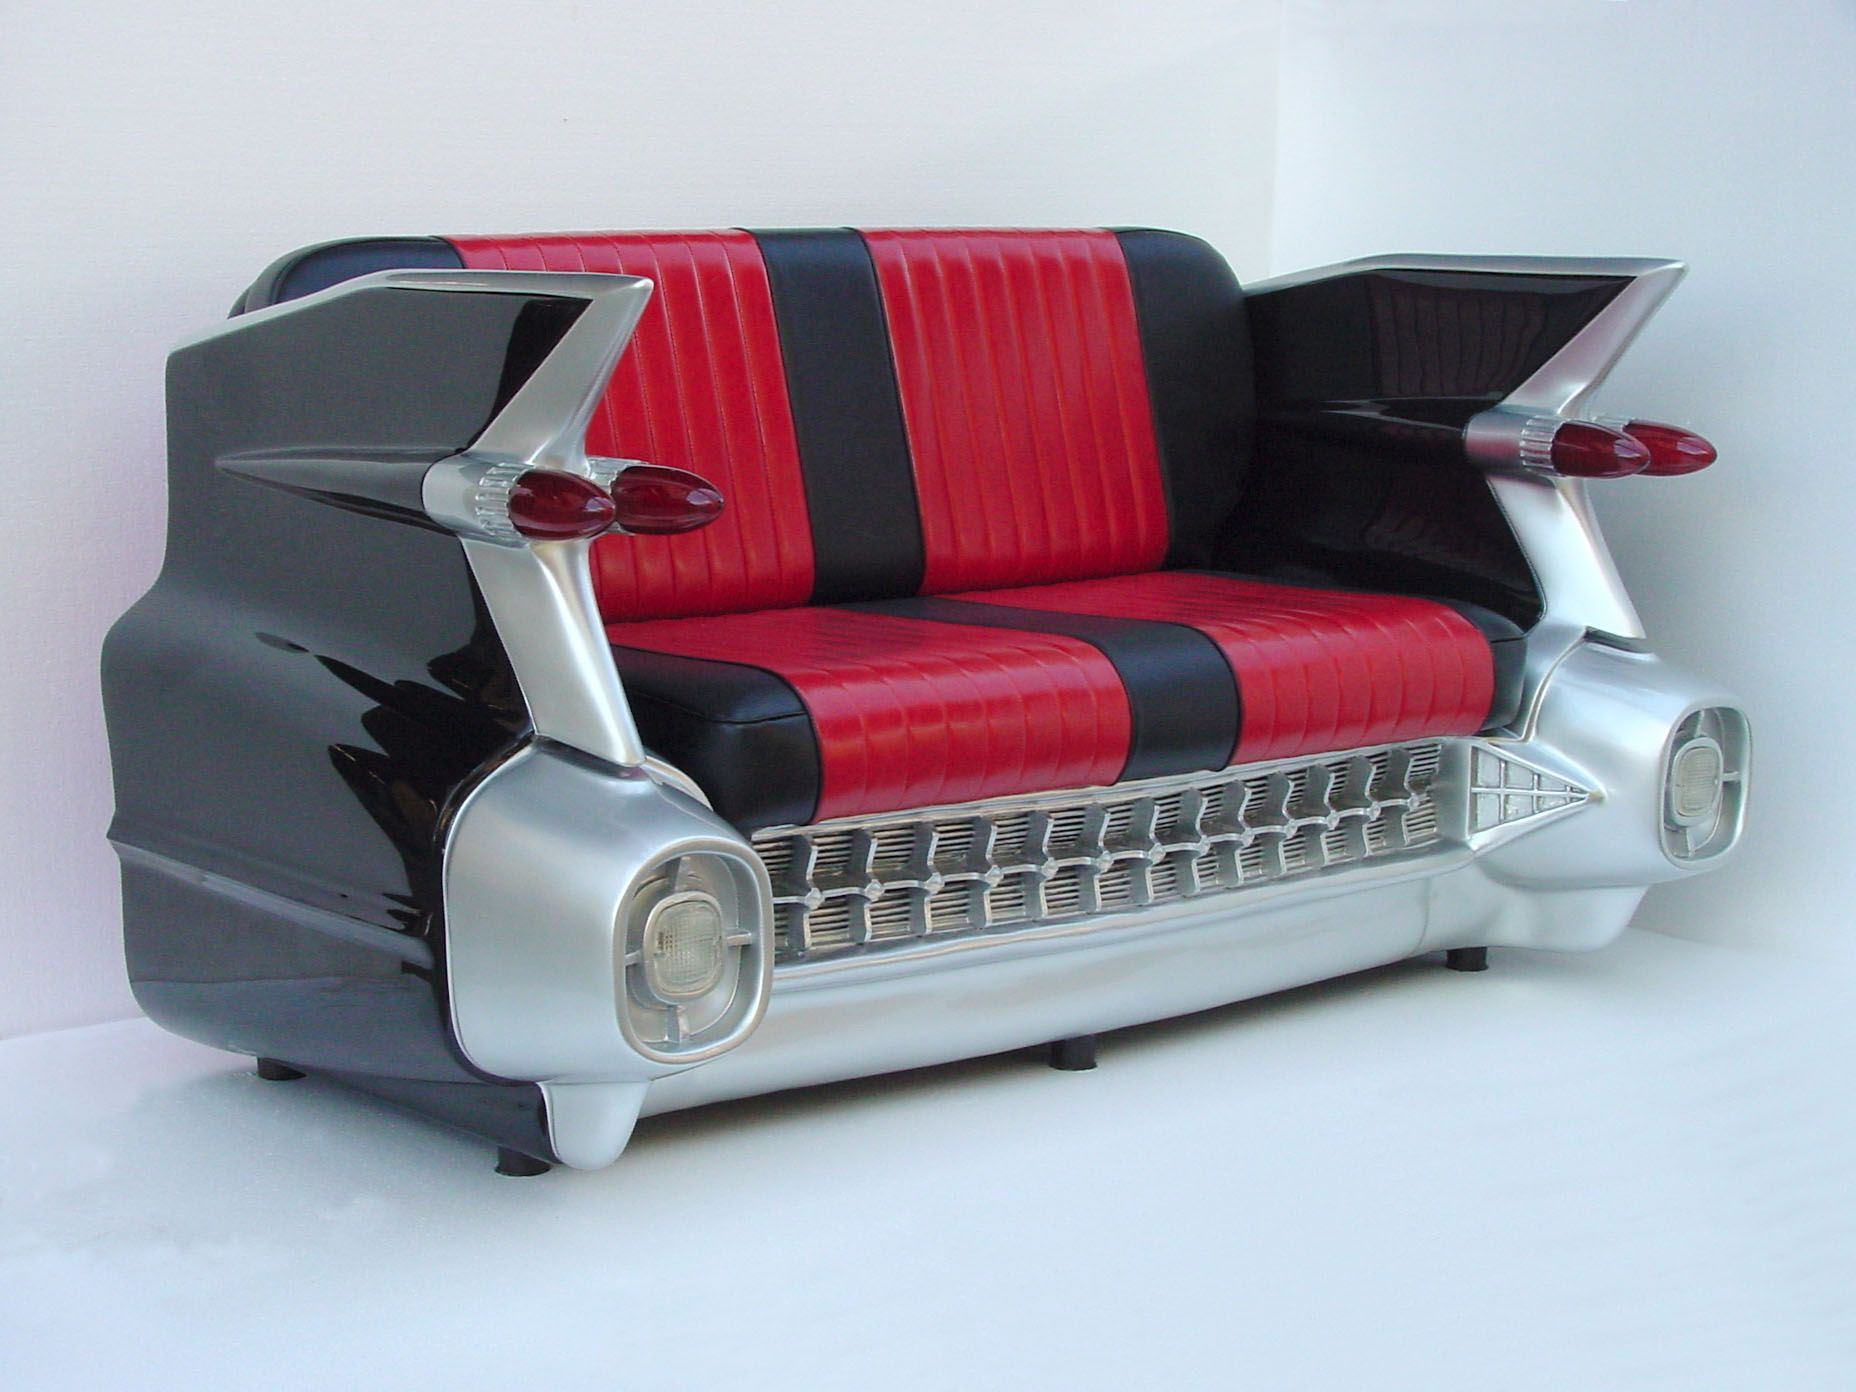 59 Cadillac Car Sofa Black